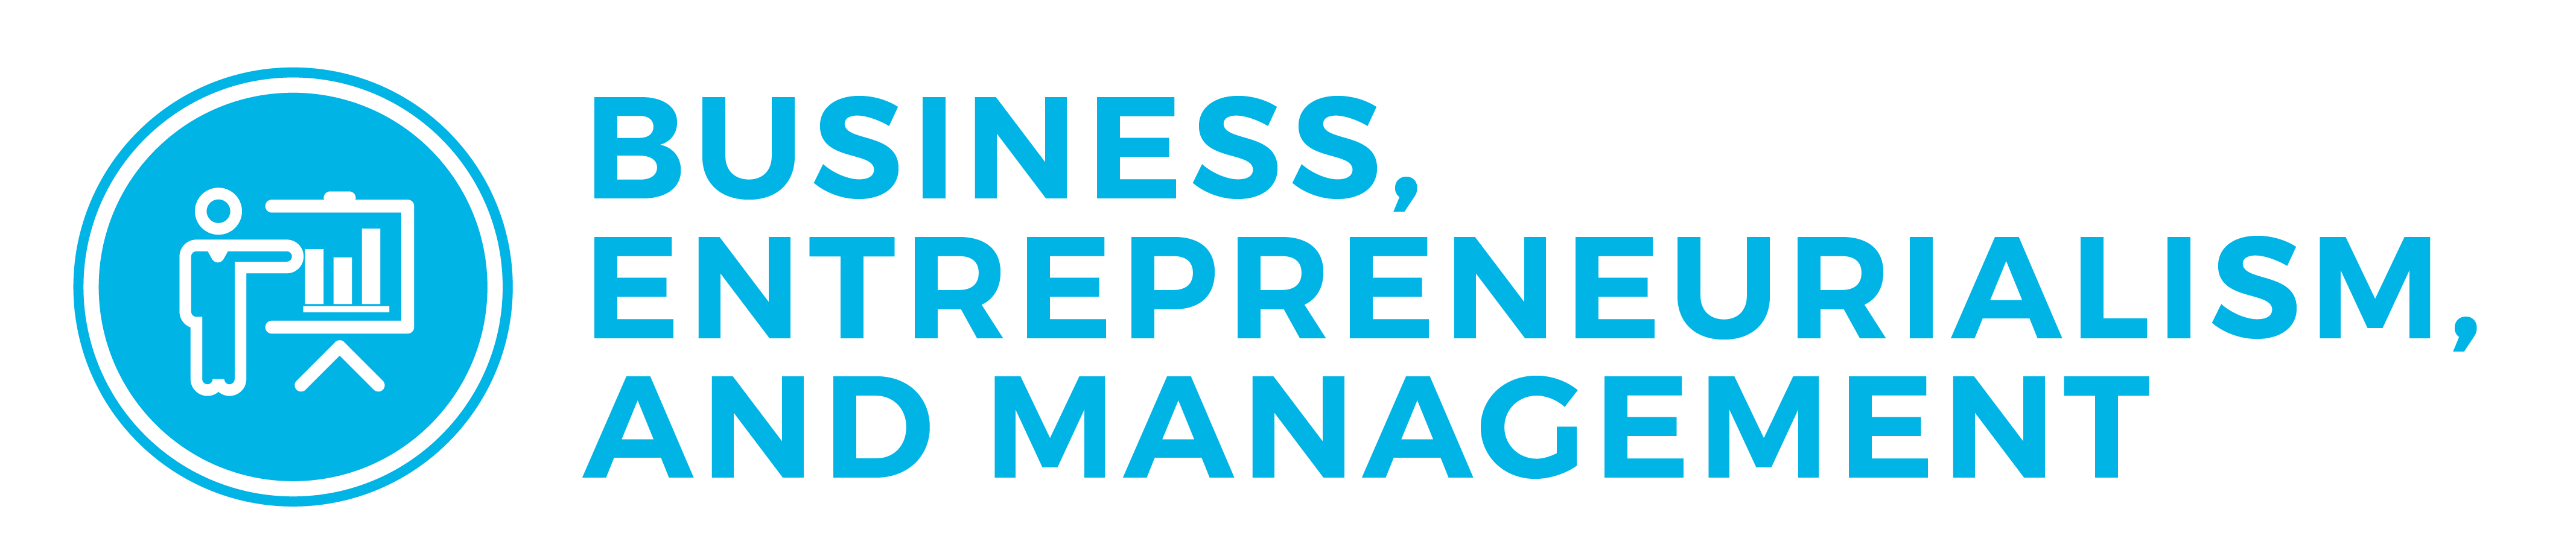 Business, Entrepreneurialism and Management Field of Interest Icon